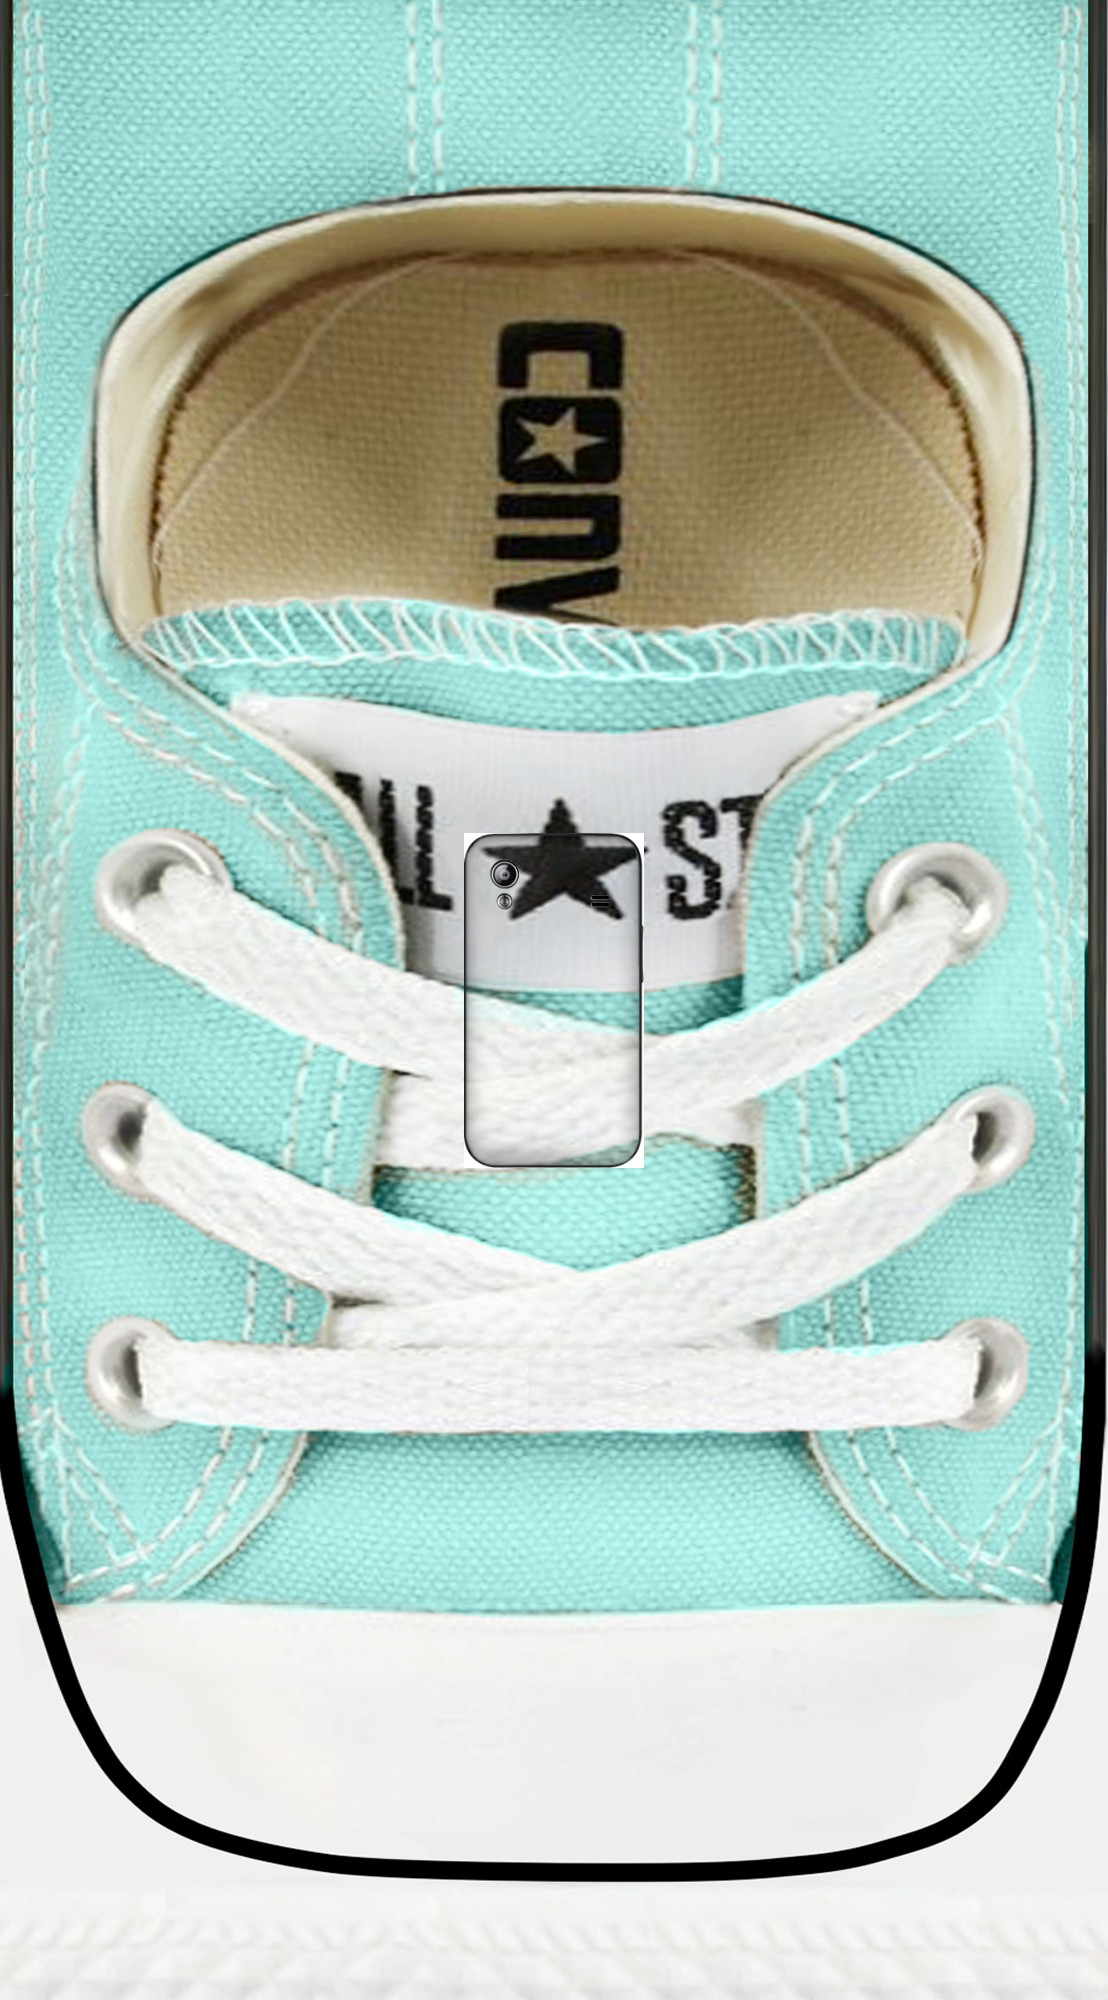 housse All Star Basket shoes Tiffany a clapet pour Samsung Galaxy Ace S5830